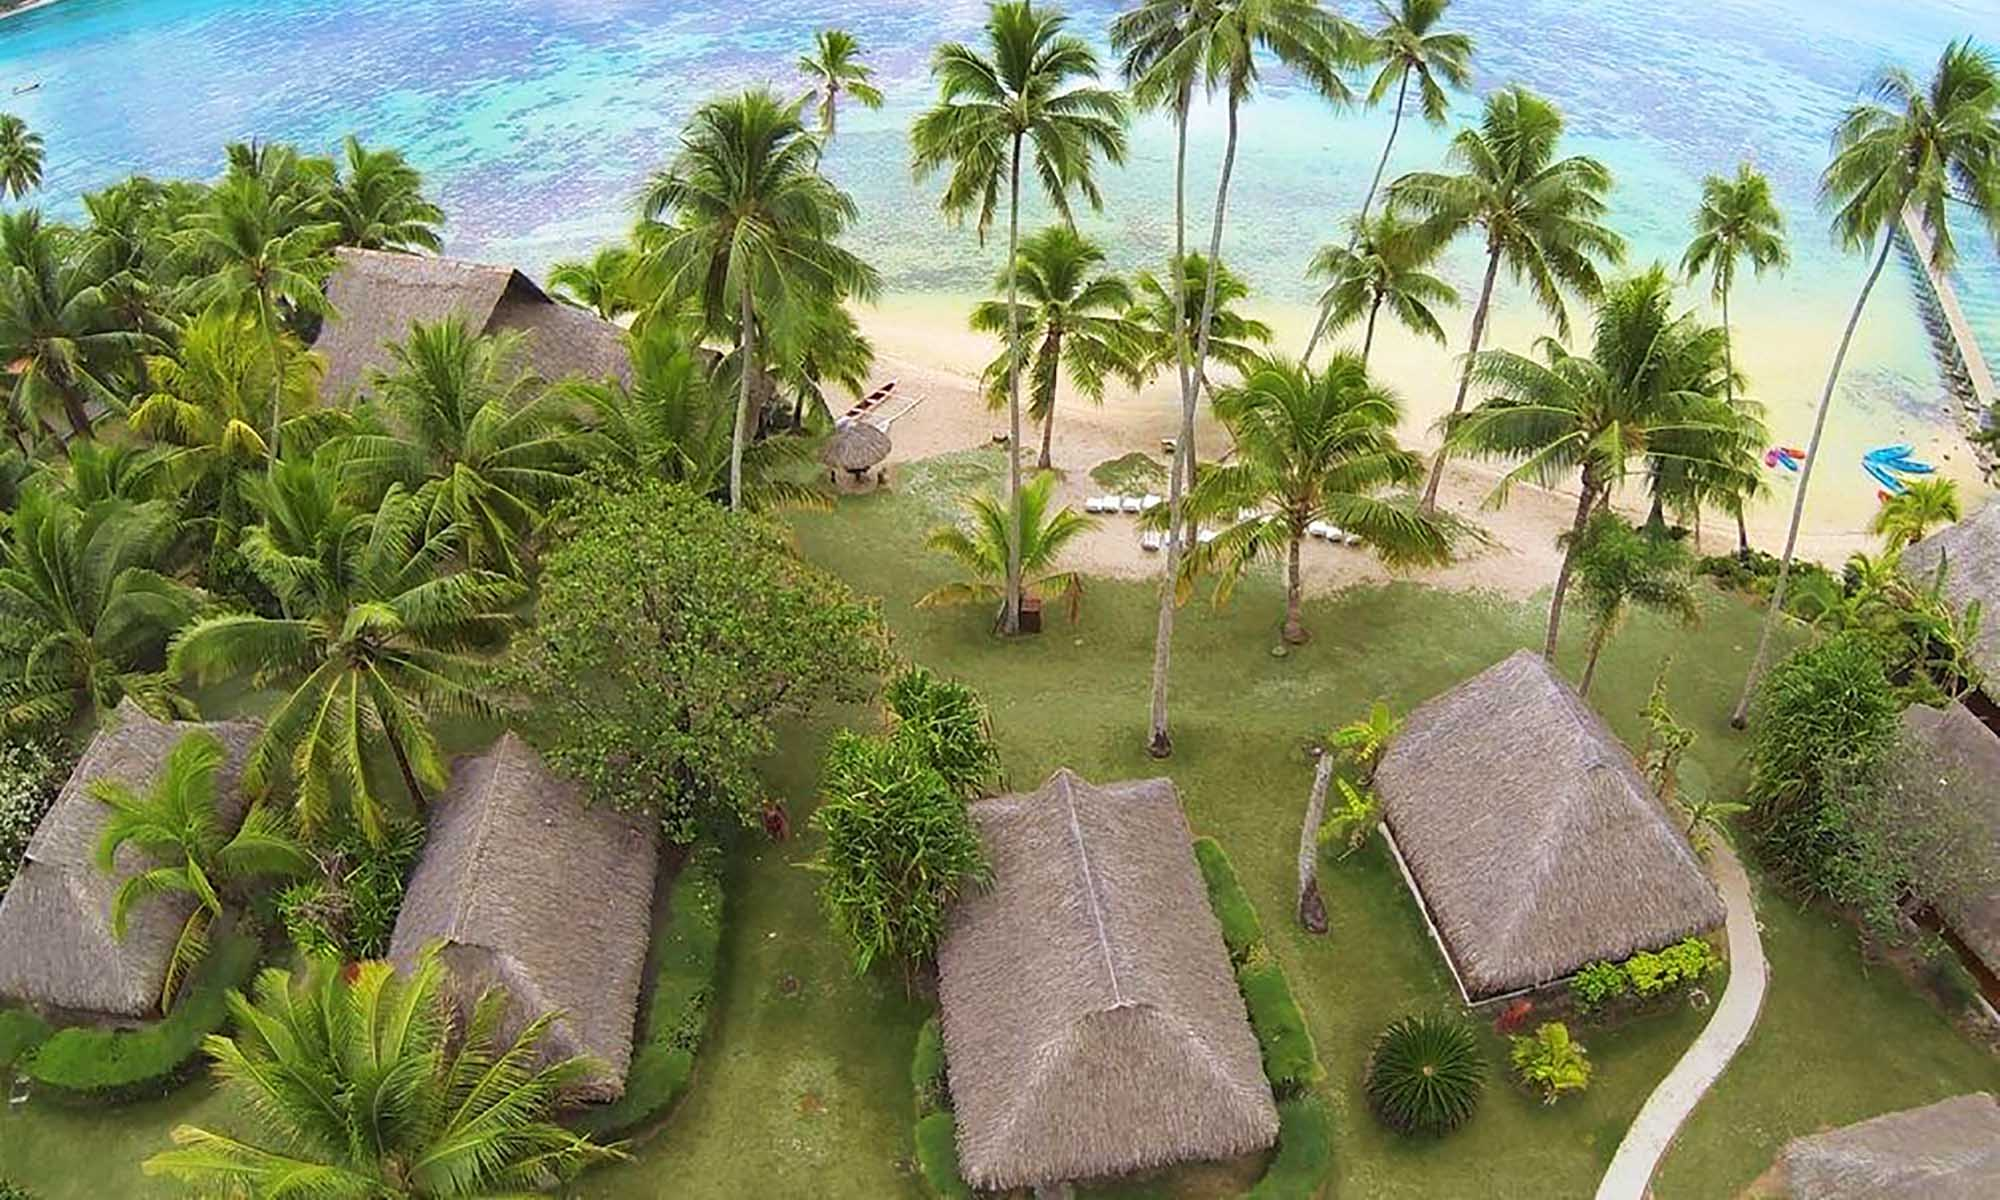 Les Tipaniers Hotel Moorea, Aerial View of the Bungalows